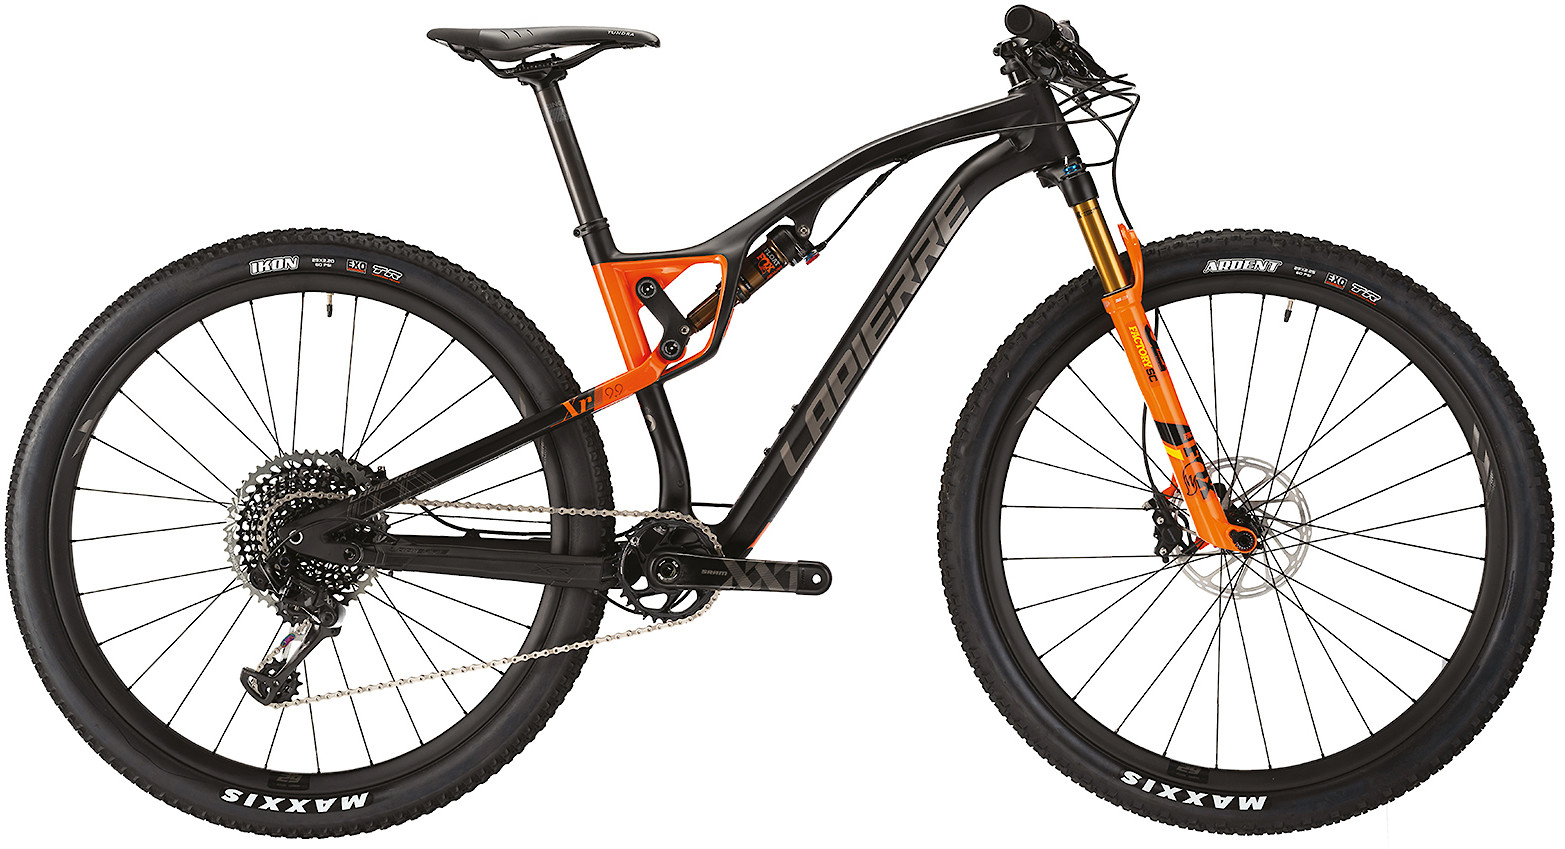 2020 Lapierre XR 9.9 LTD